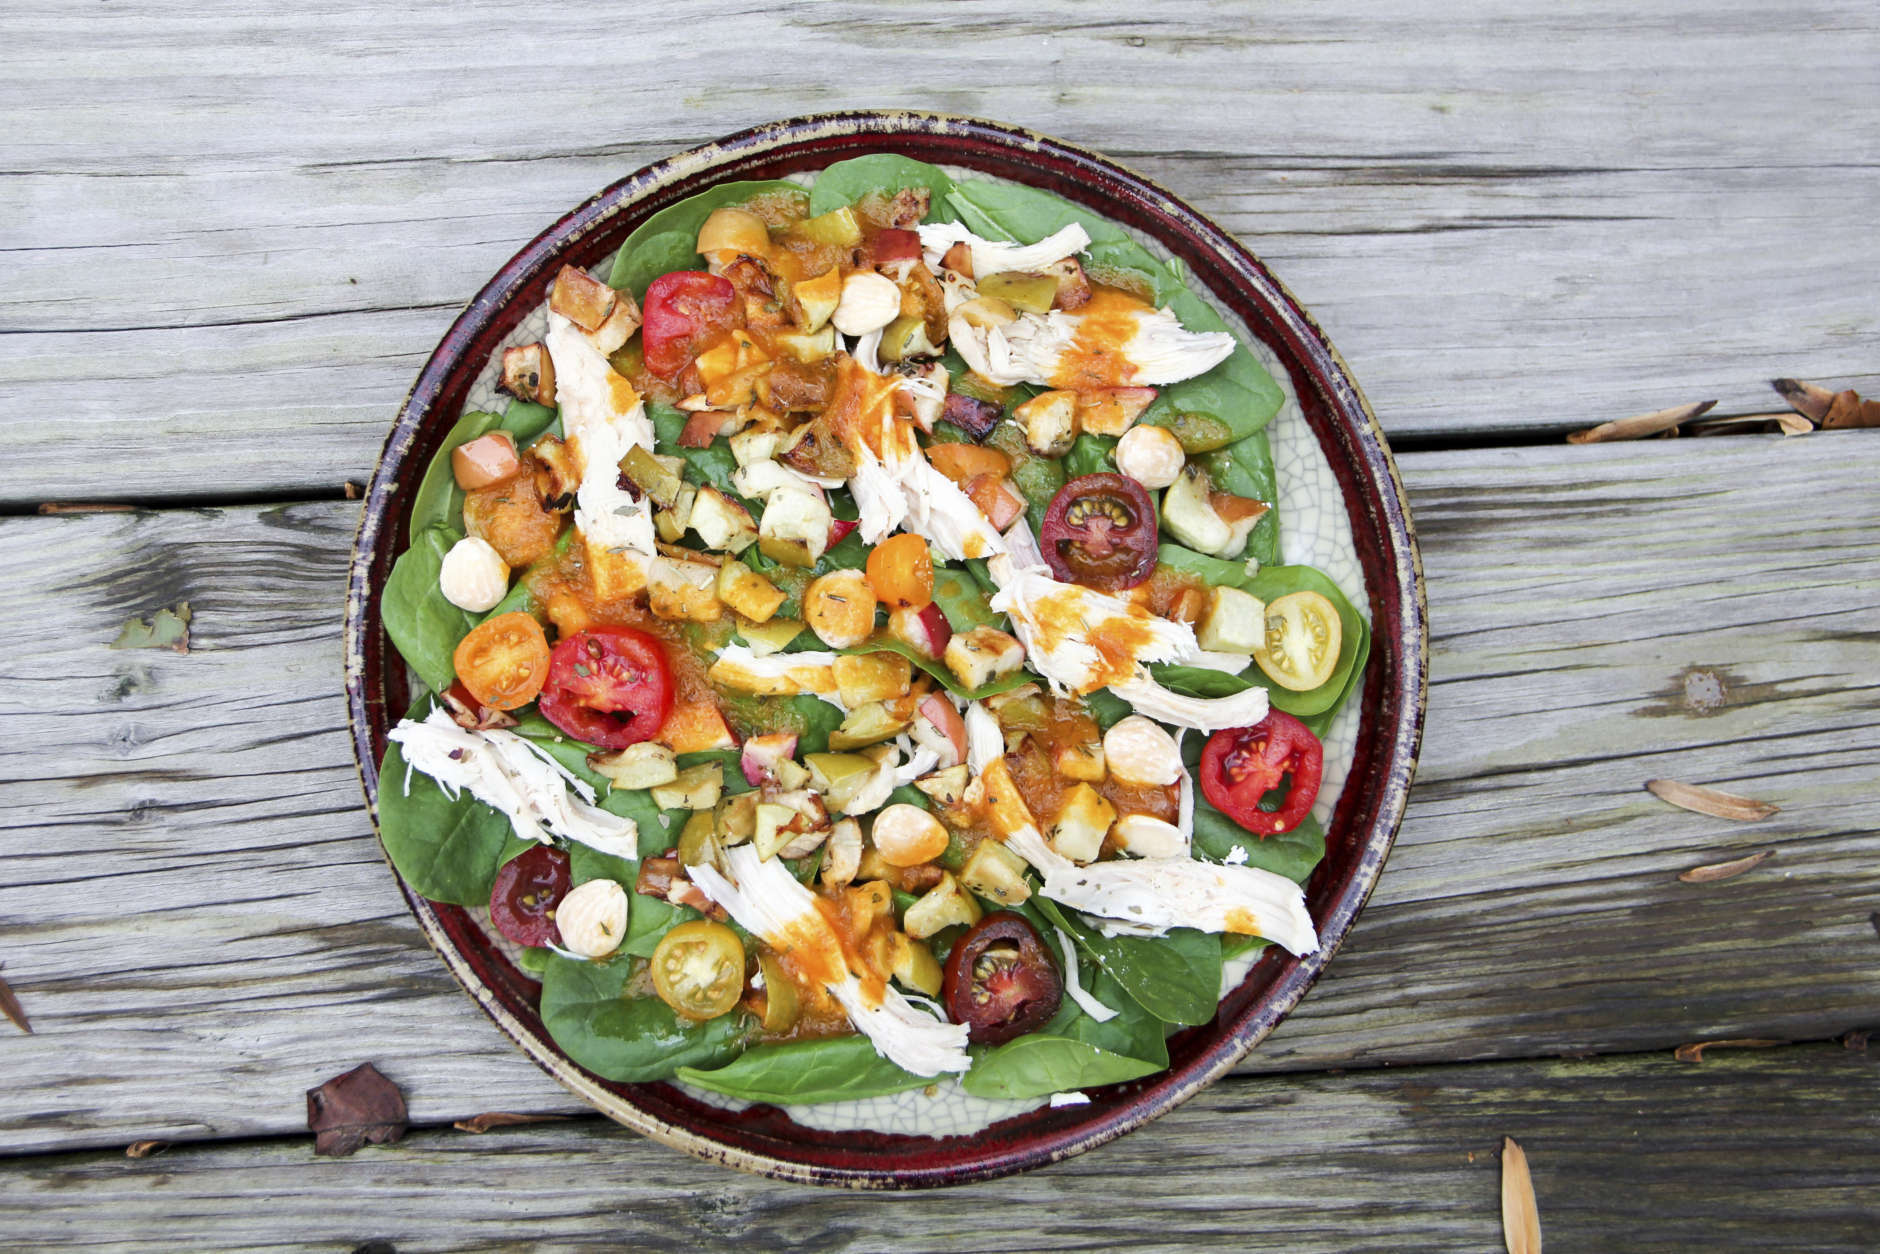 This Nov. 6, 2017 photo shows a green salad with roasted apple and pumpkin vinaigrette in Bethesda, Md. This dish is from a recipe by Melissa d'Arabian. (Melissa d'Arabian via AP)